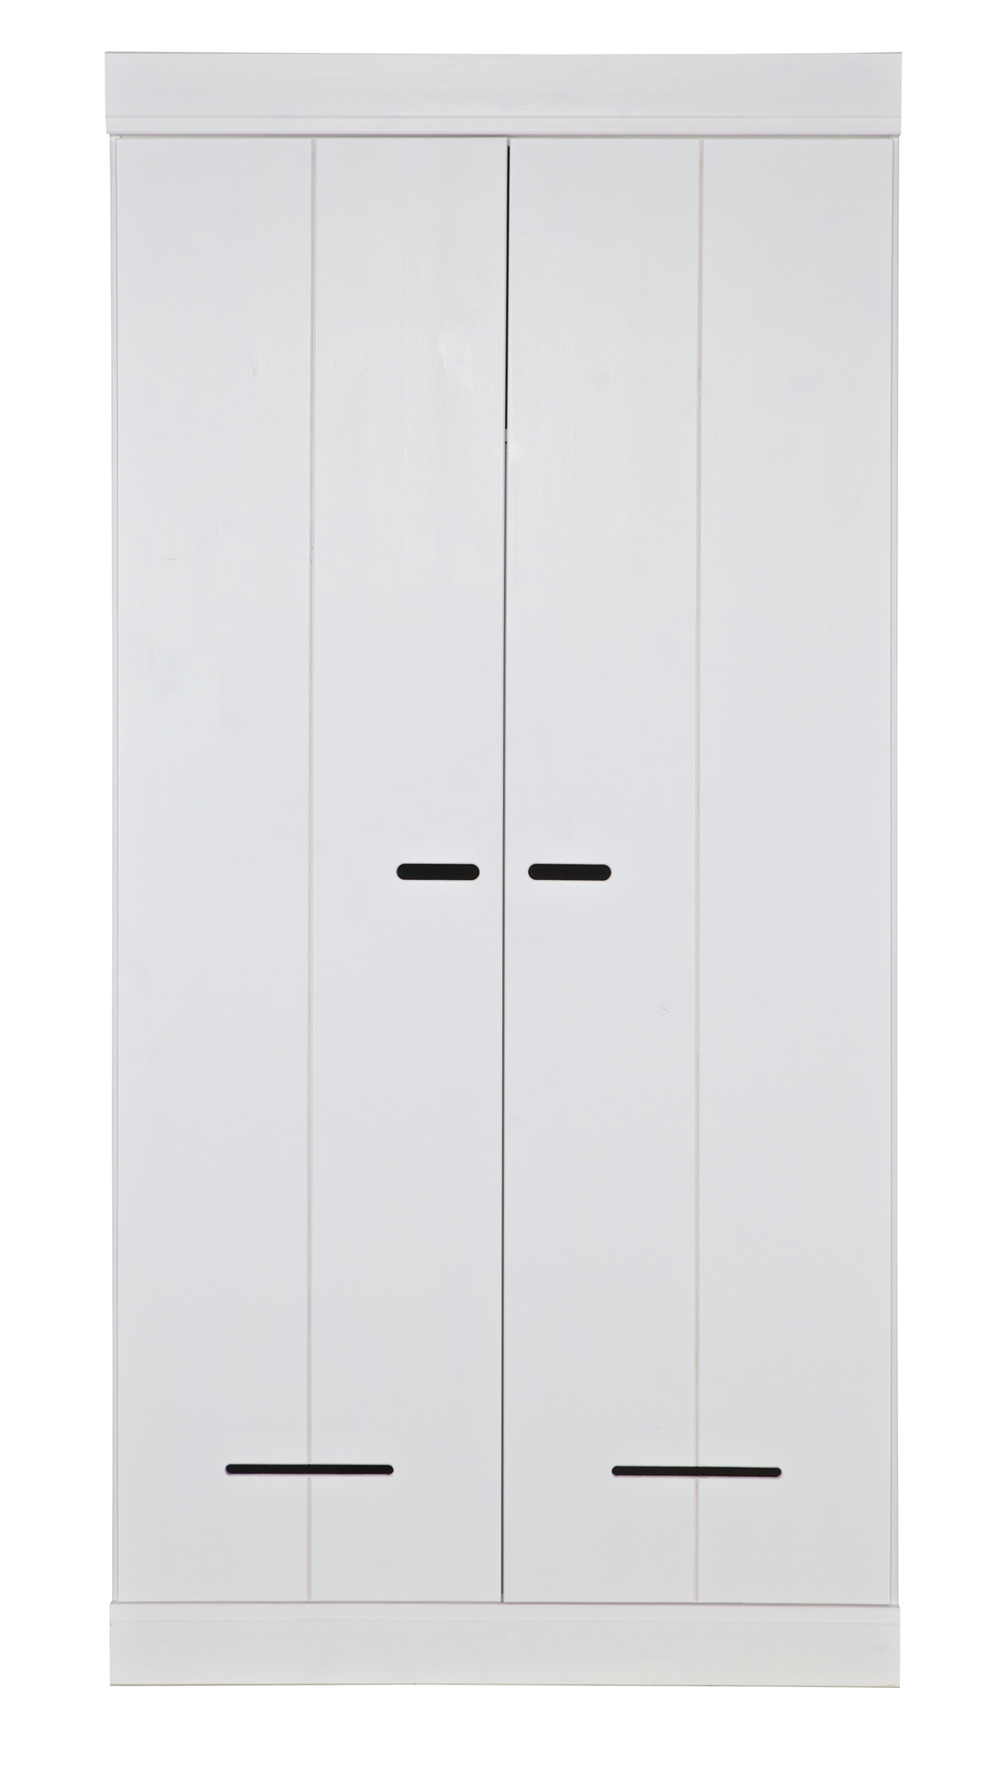 armoire avec 2 portes blanche en pin massif h195 x l94 x p53 cm ebay. Black Bedroom Furniture Sets. Home Design Ideas